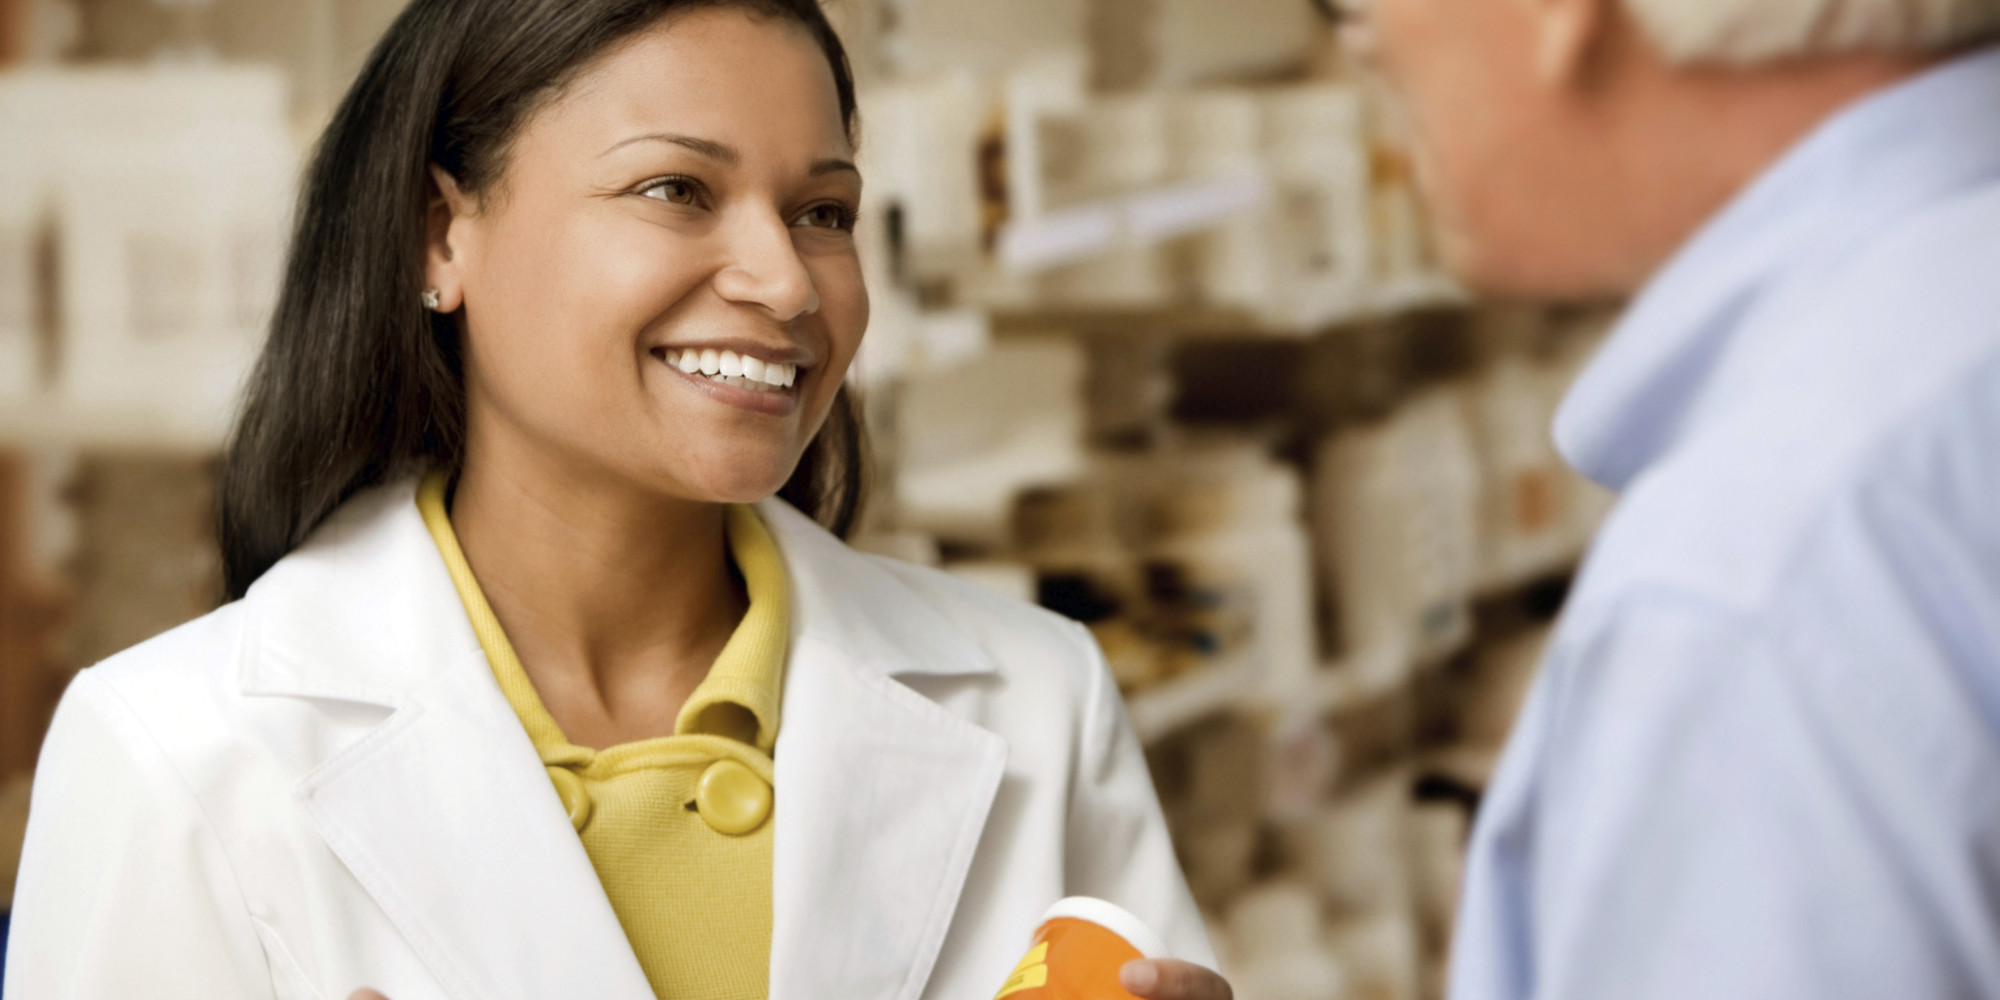 The important role of a pharmacists